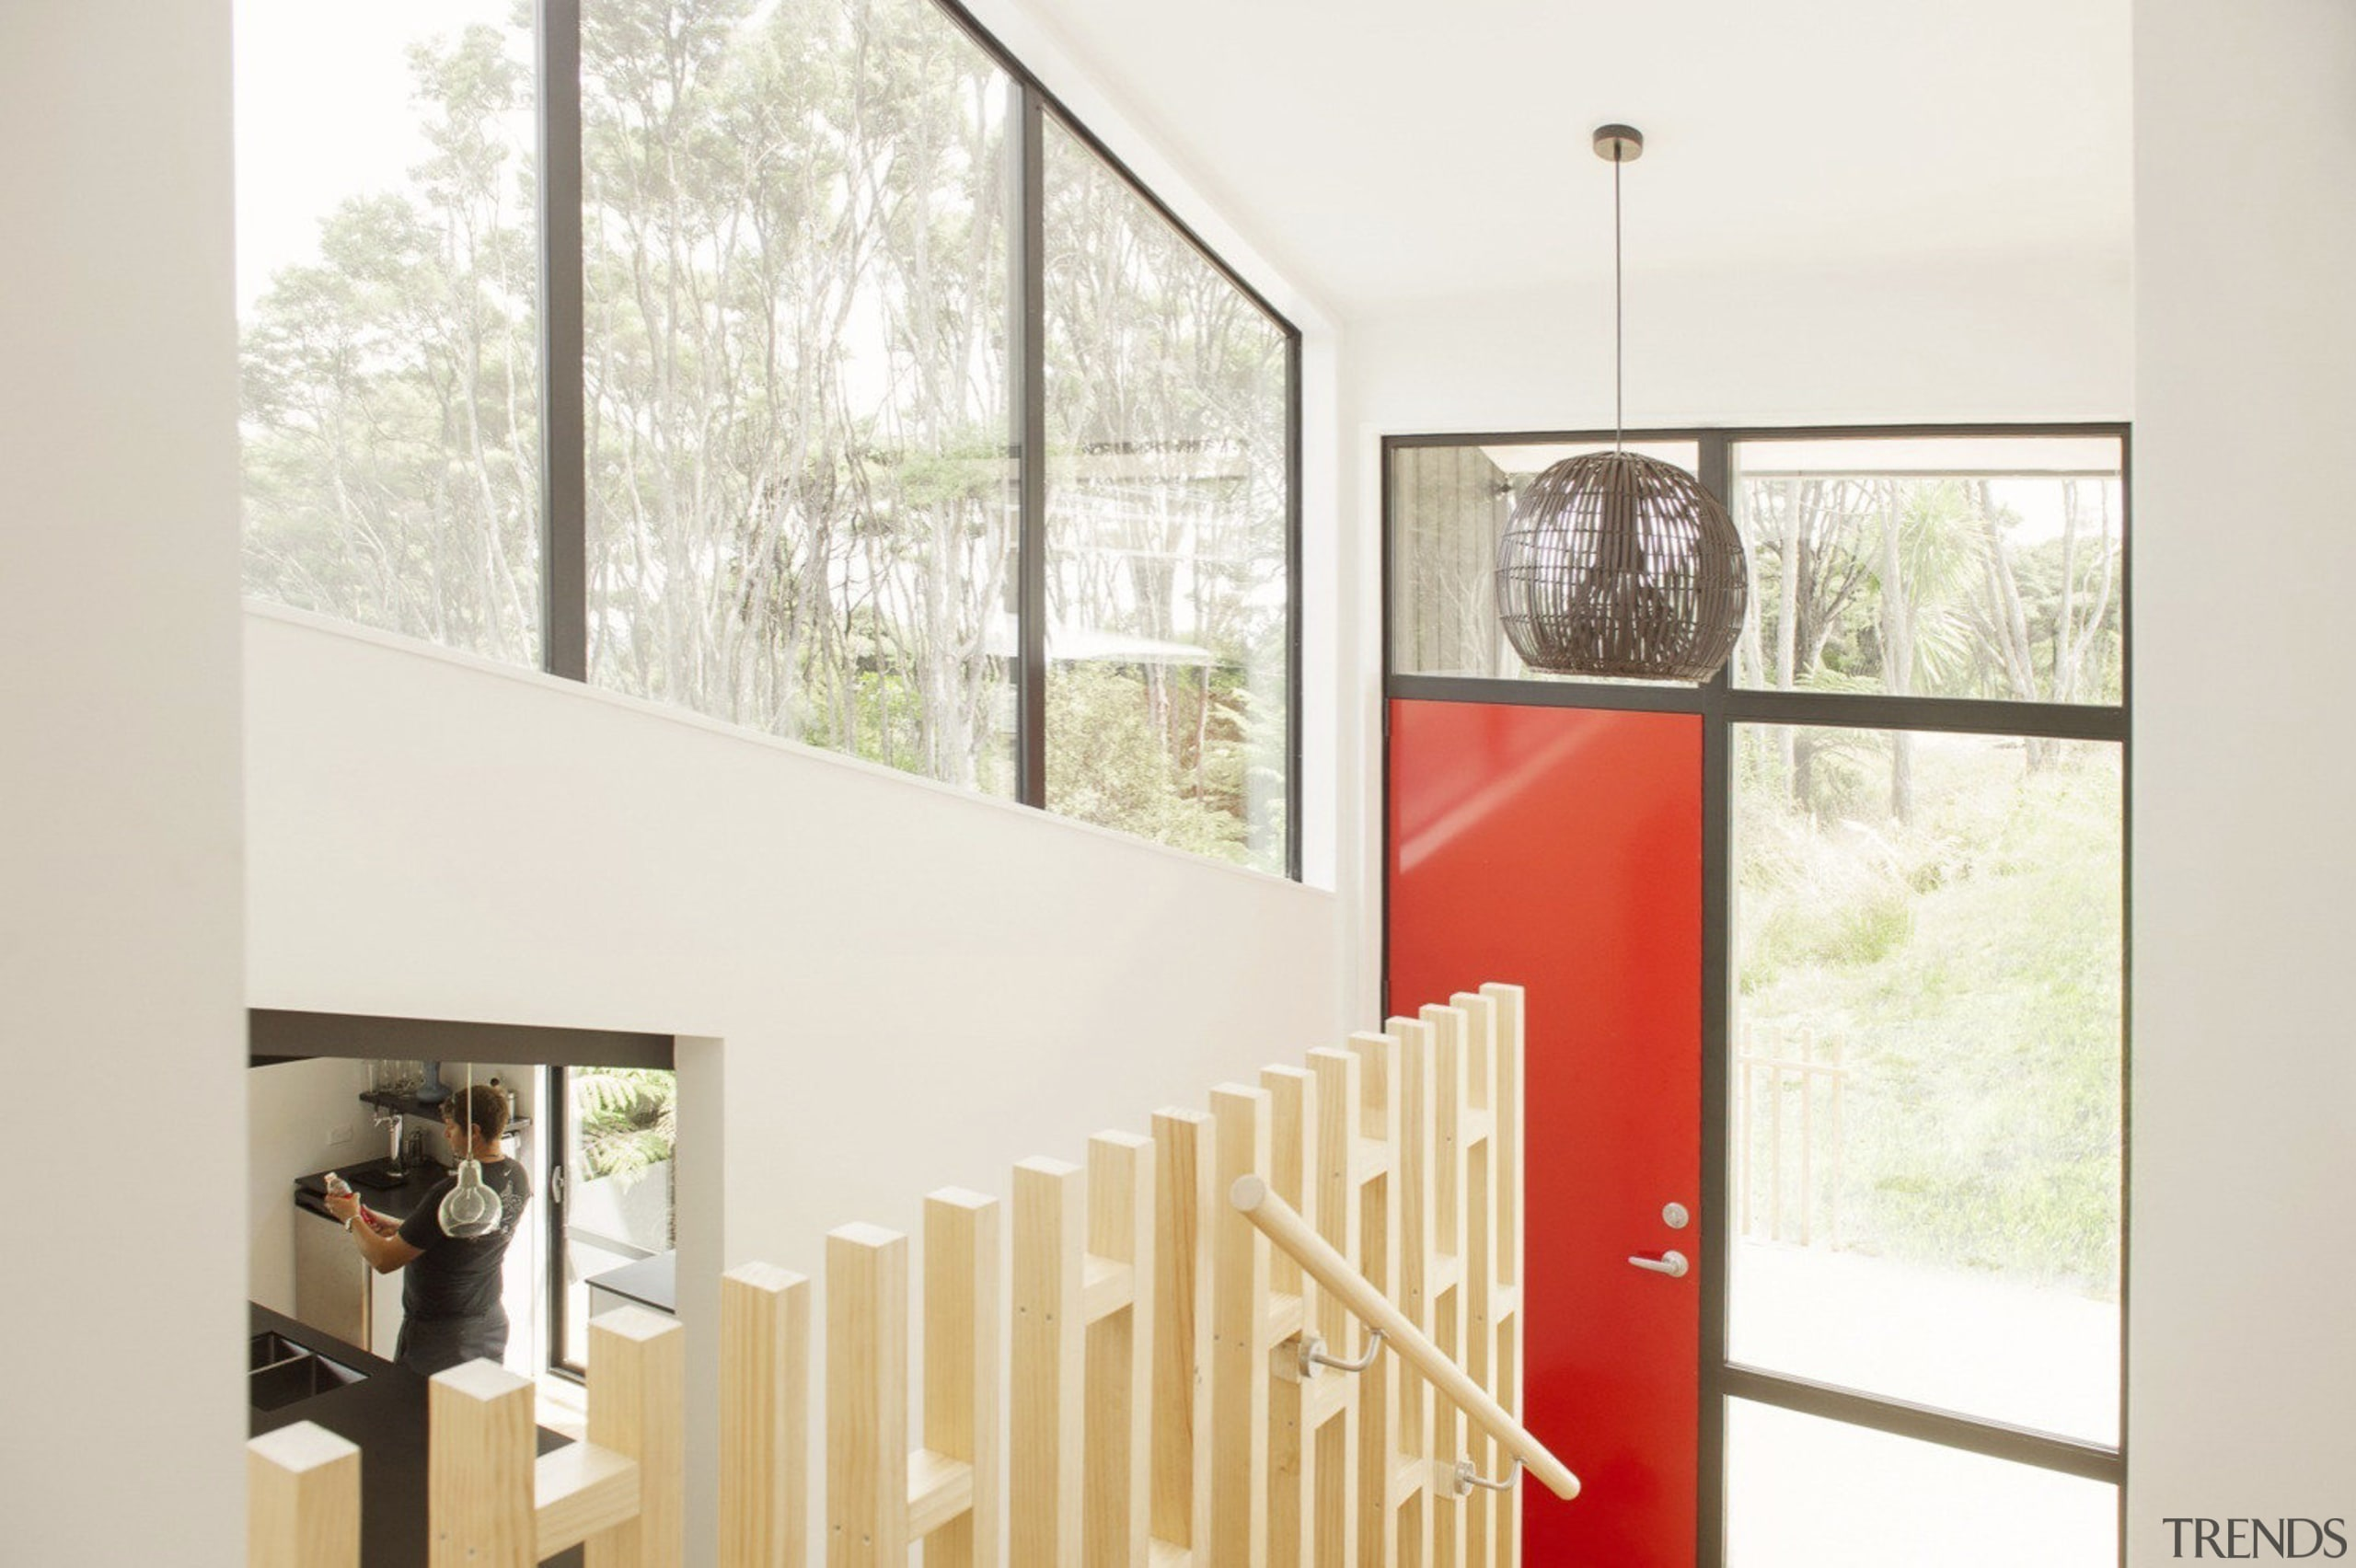 City meets country at Karaka Lakes - City architecture, door, home, house, interior design, real estate, wall, window, white